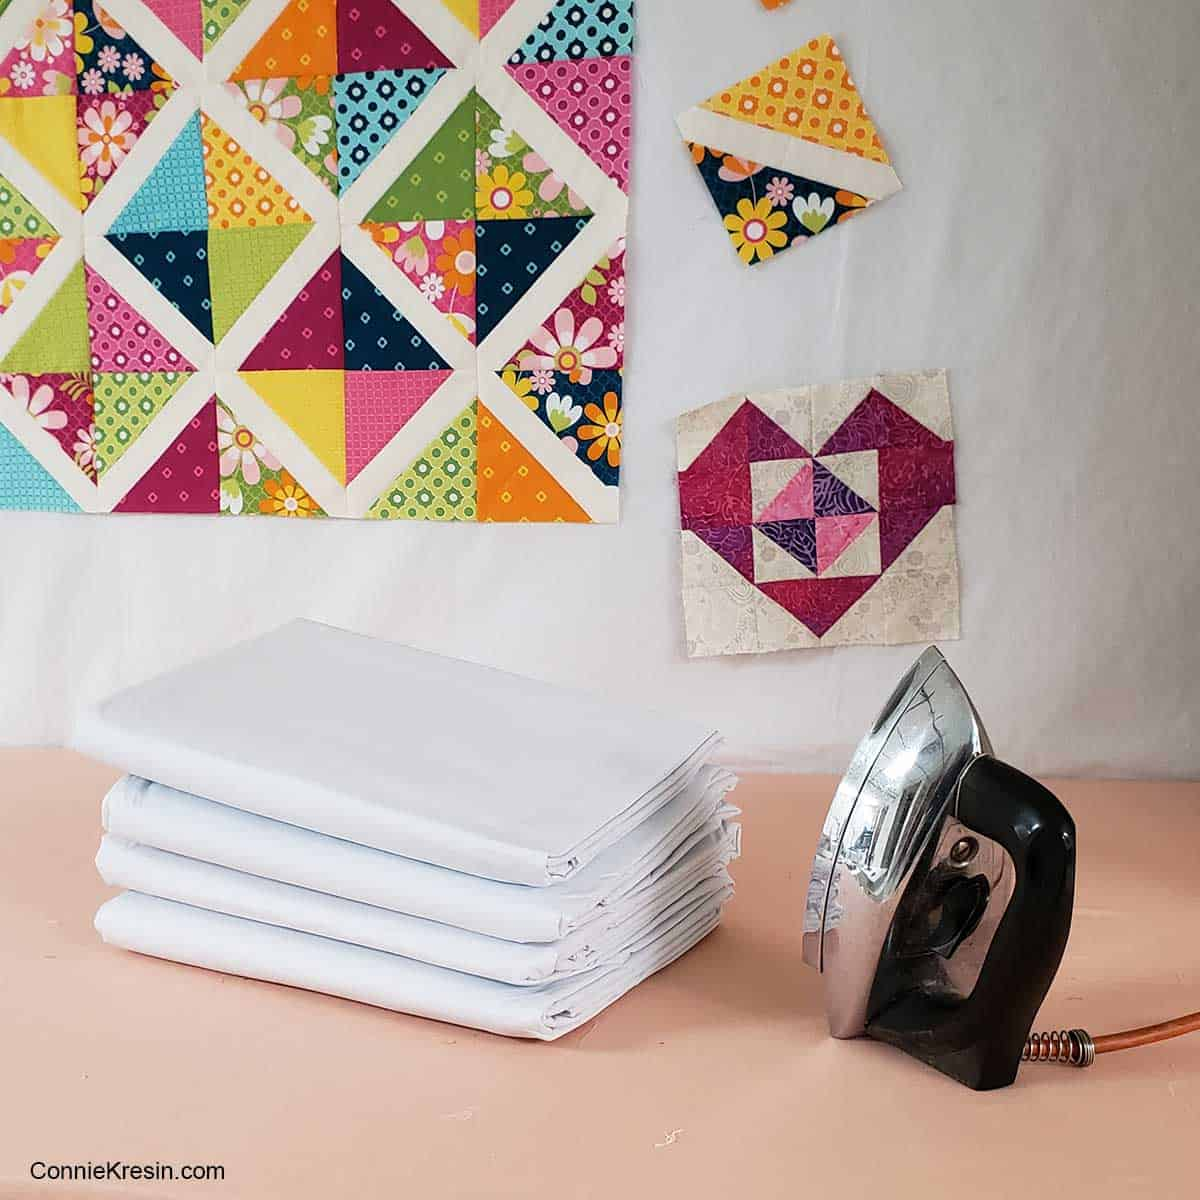 Flannel backed tablecloths for design walls